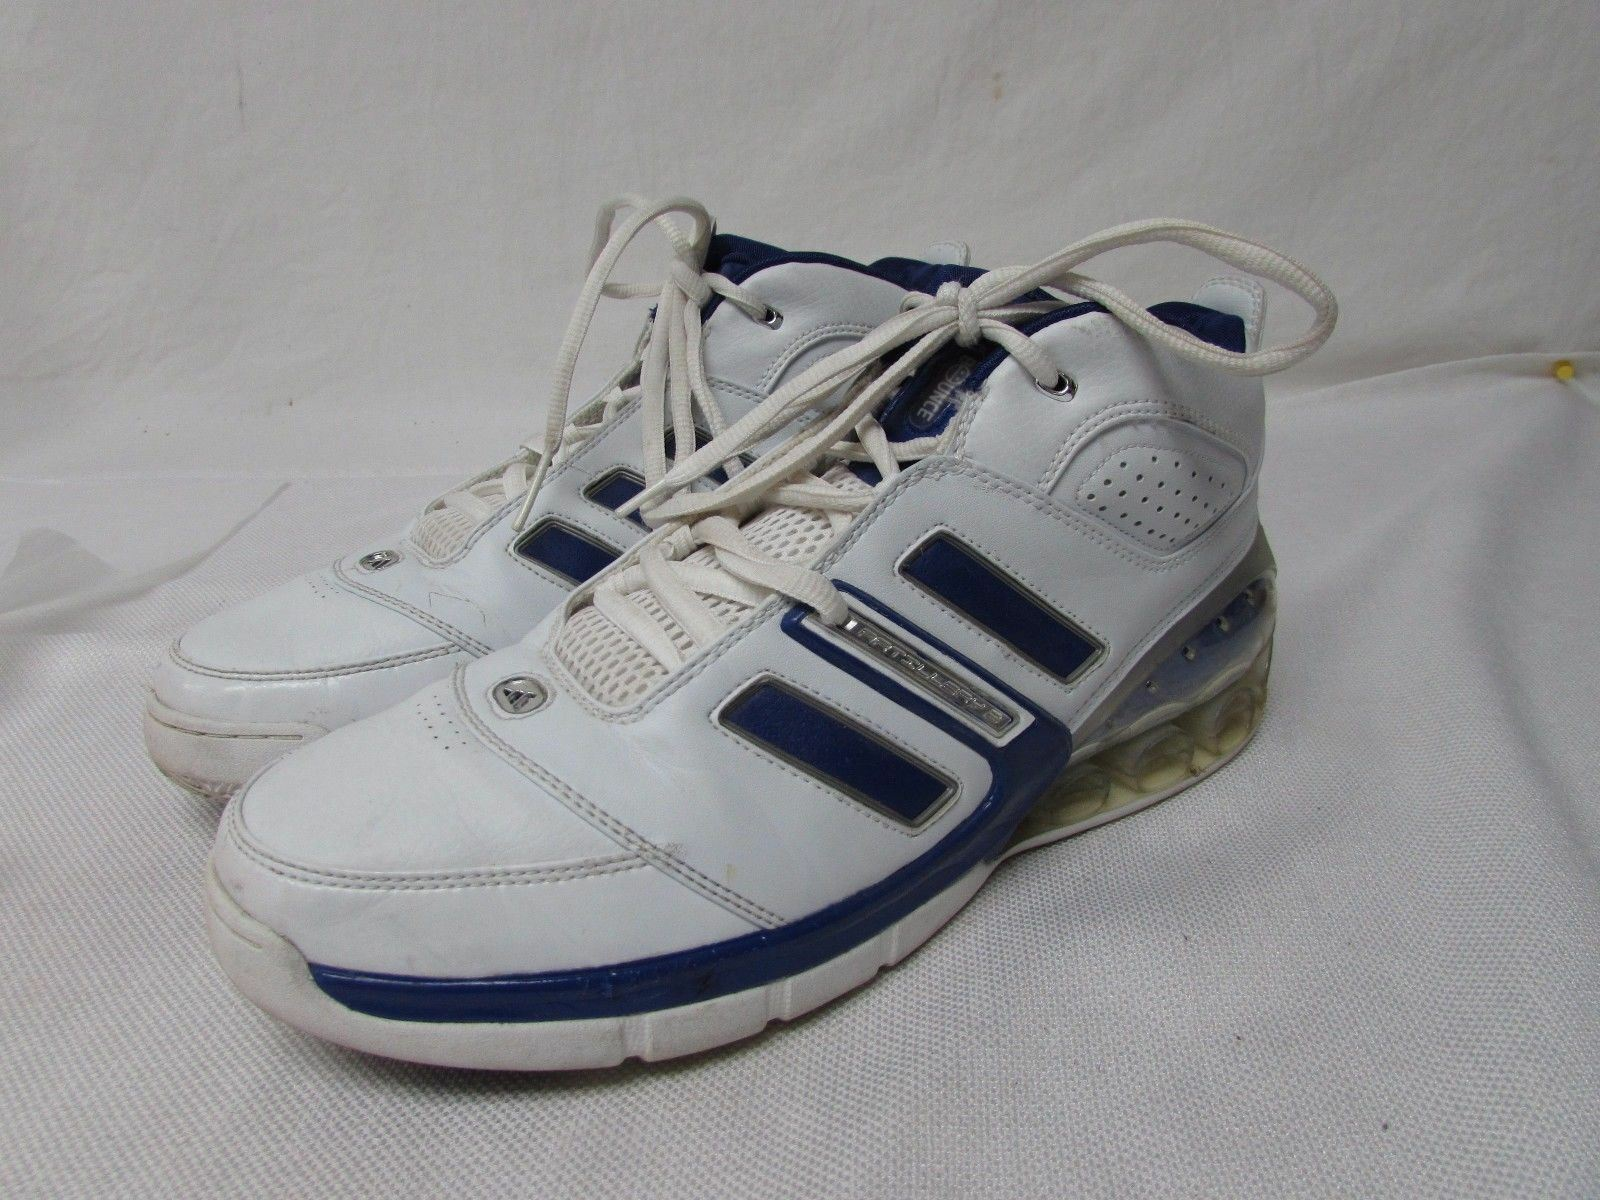 Adidas bounce men's size 11.5 high top basket ball shoes athletic Wild casual shoes